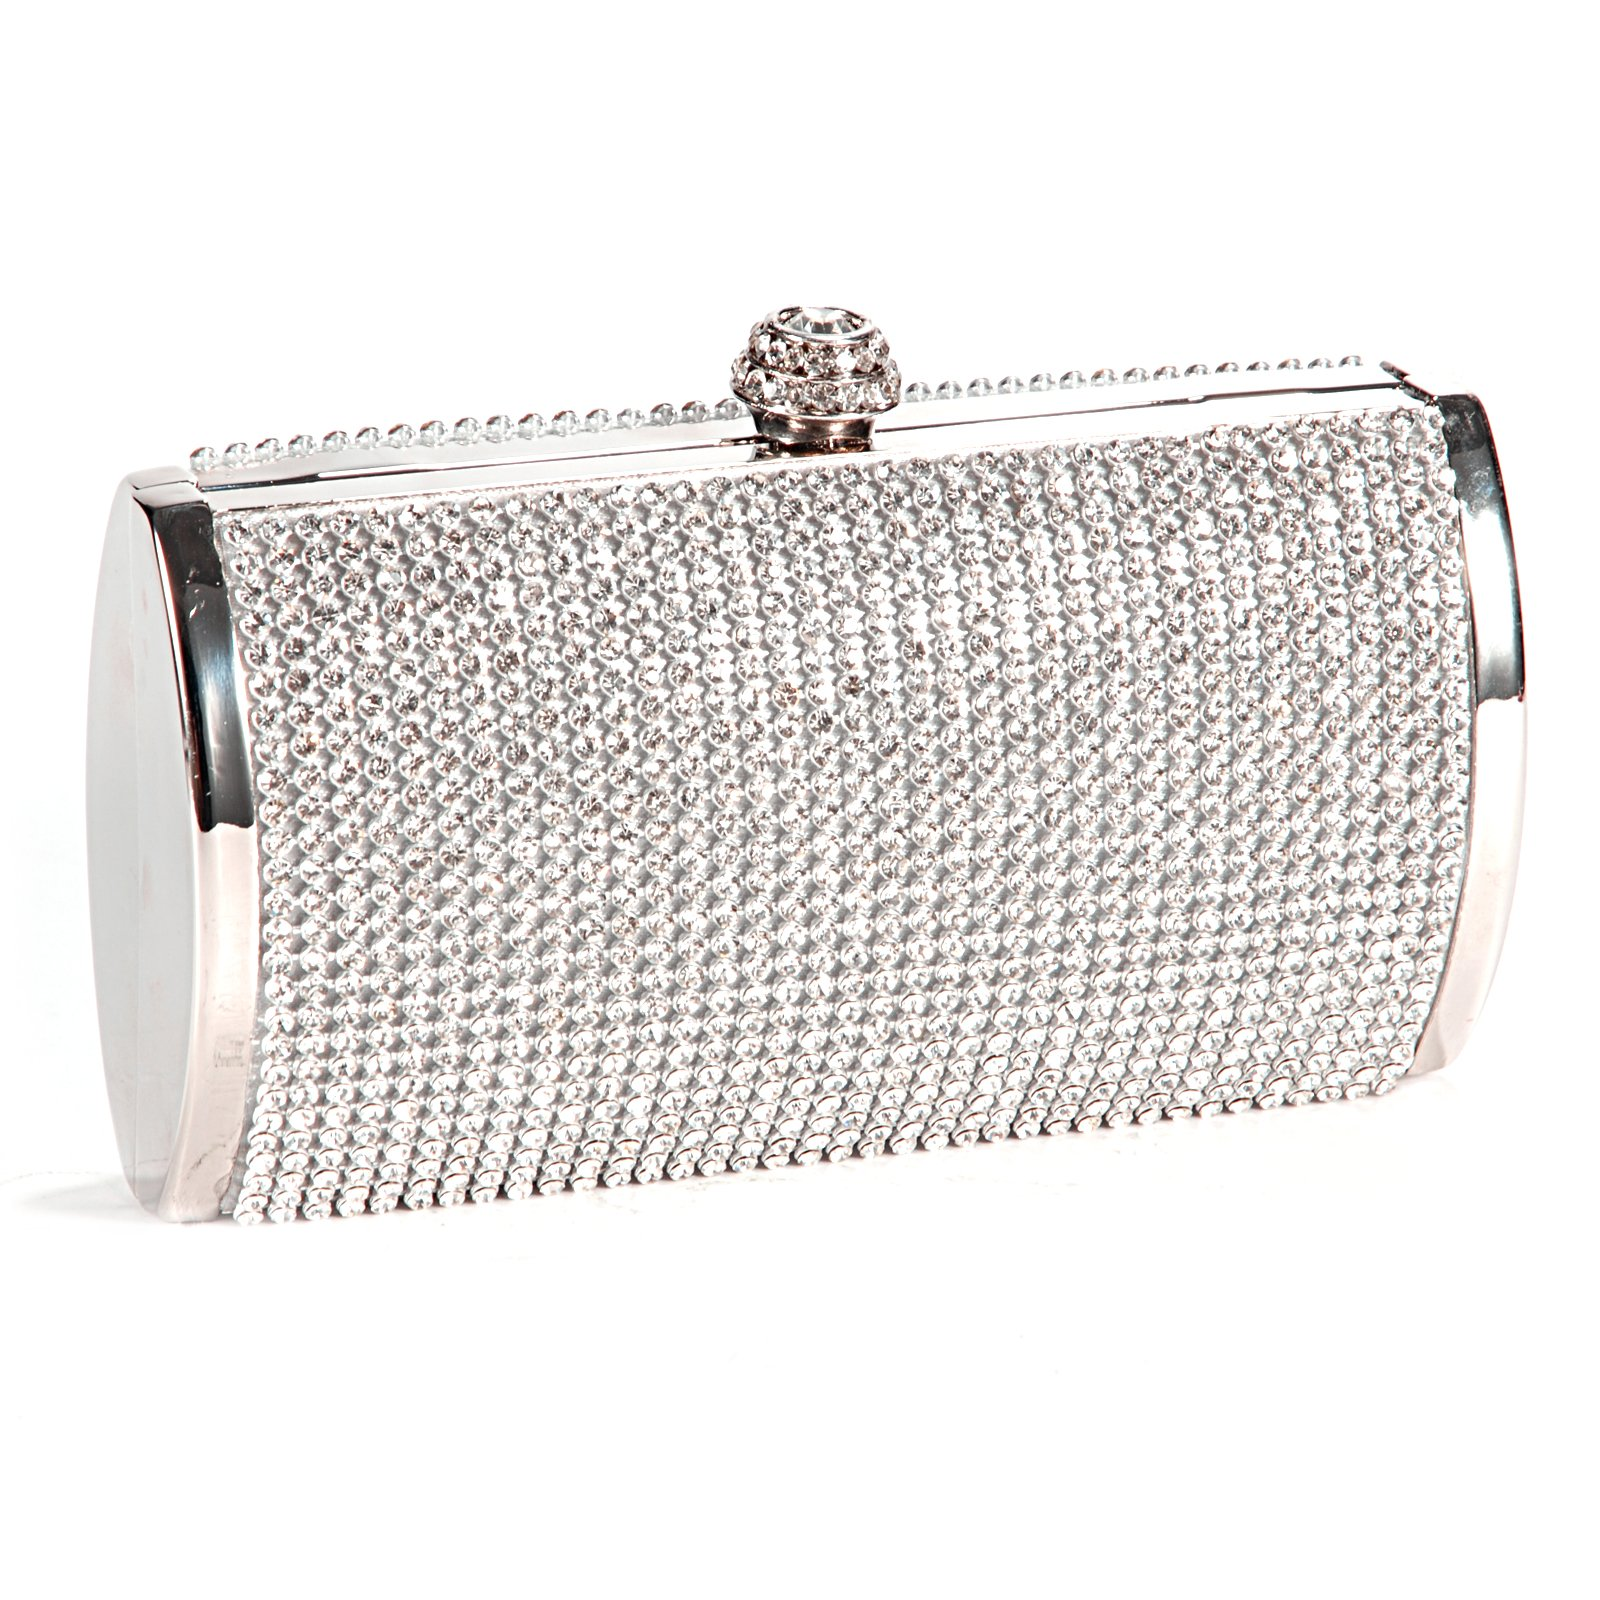 TEXU Diamond Cluthes Long hand Bag Ladies Rhinestone Evening Bag Shoulder Chain Bag Party Banquet Evening Clutch Bags